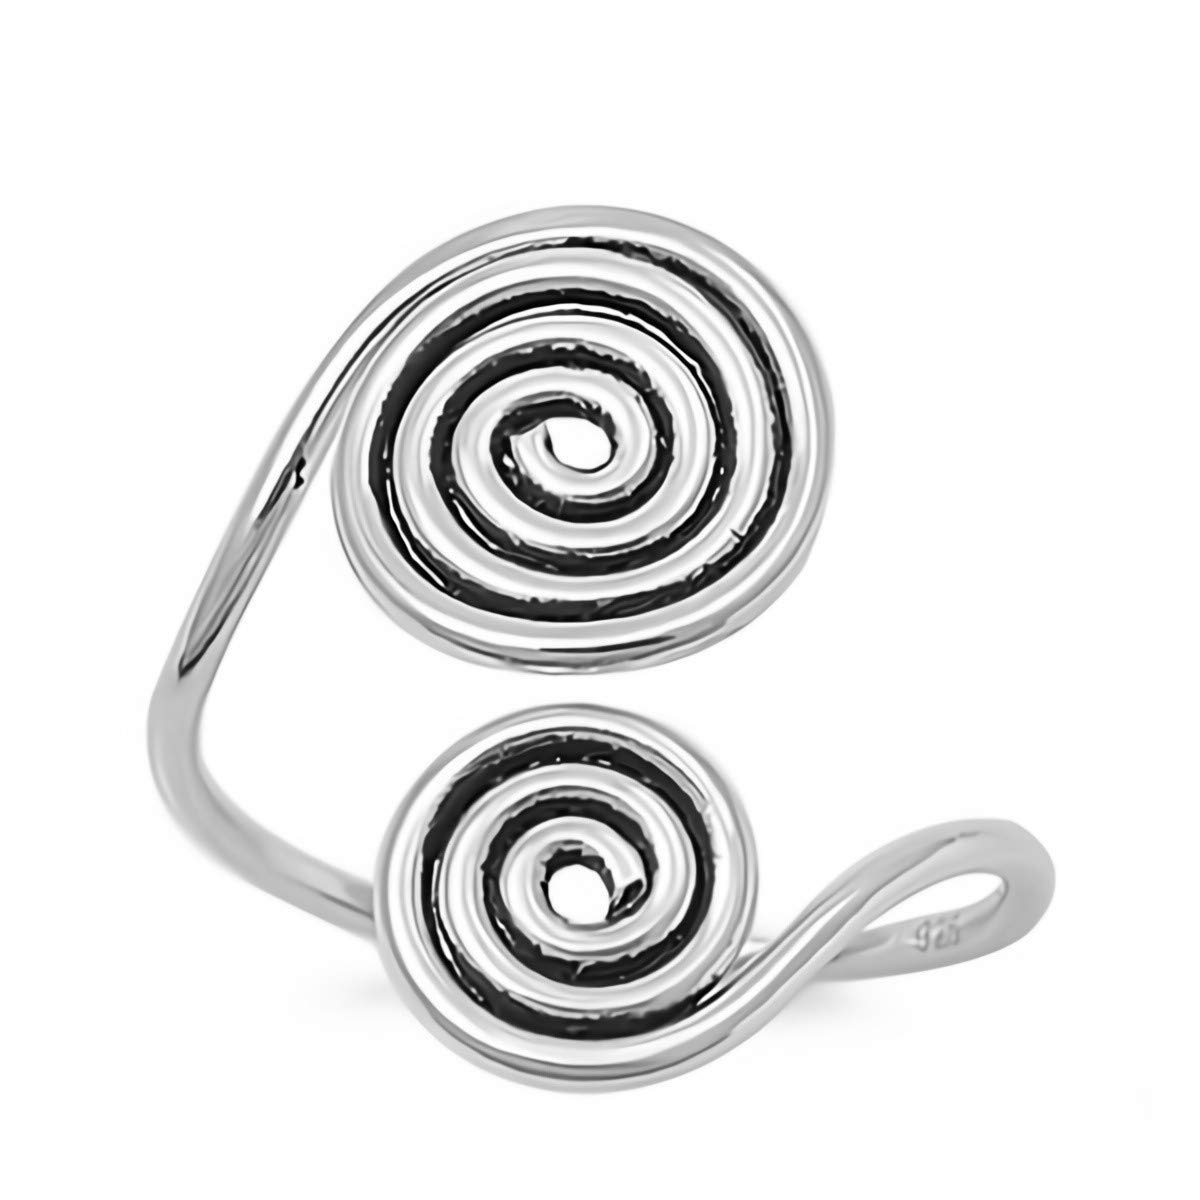 Cute Jewelry Gift for Women in Gift Box Glitzs Jewels 925 Sterling Silver Ring Spirals